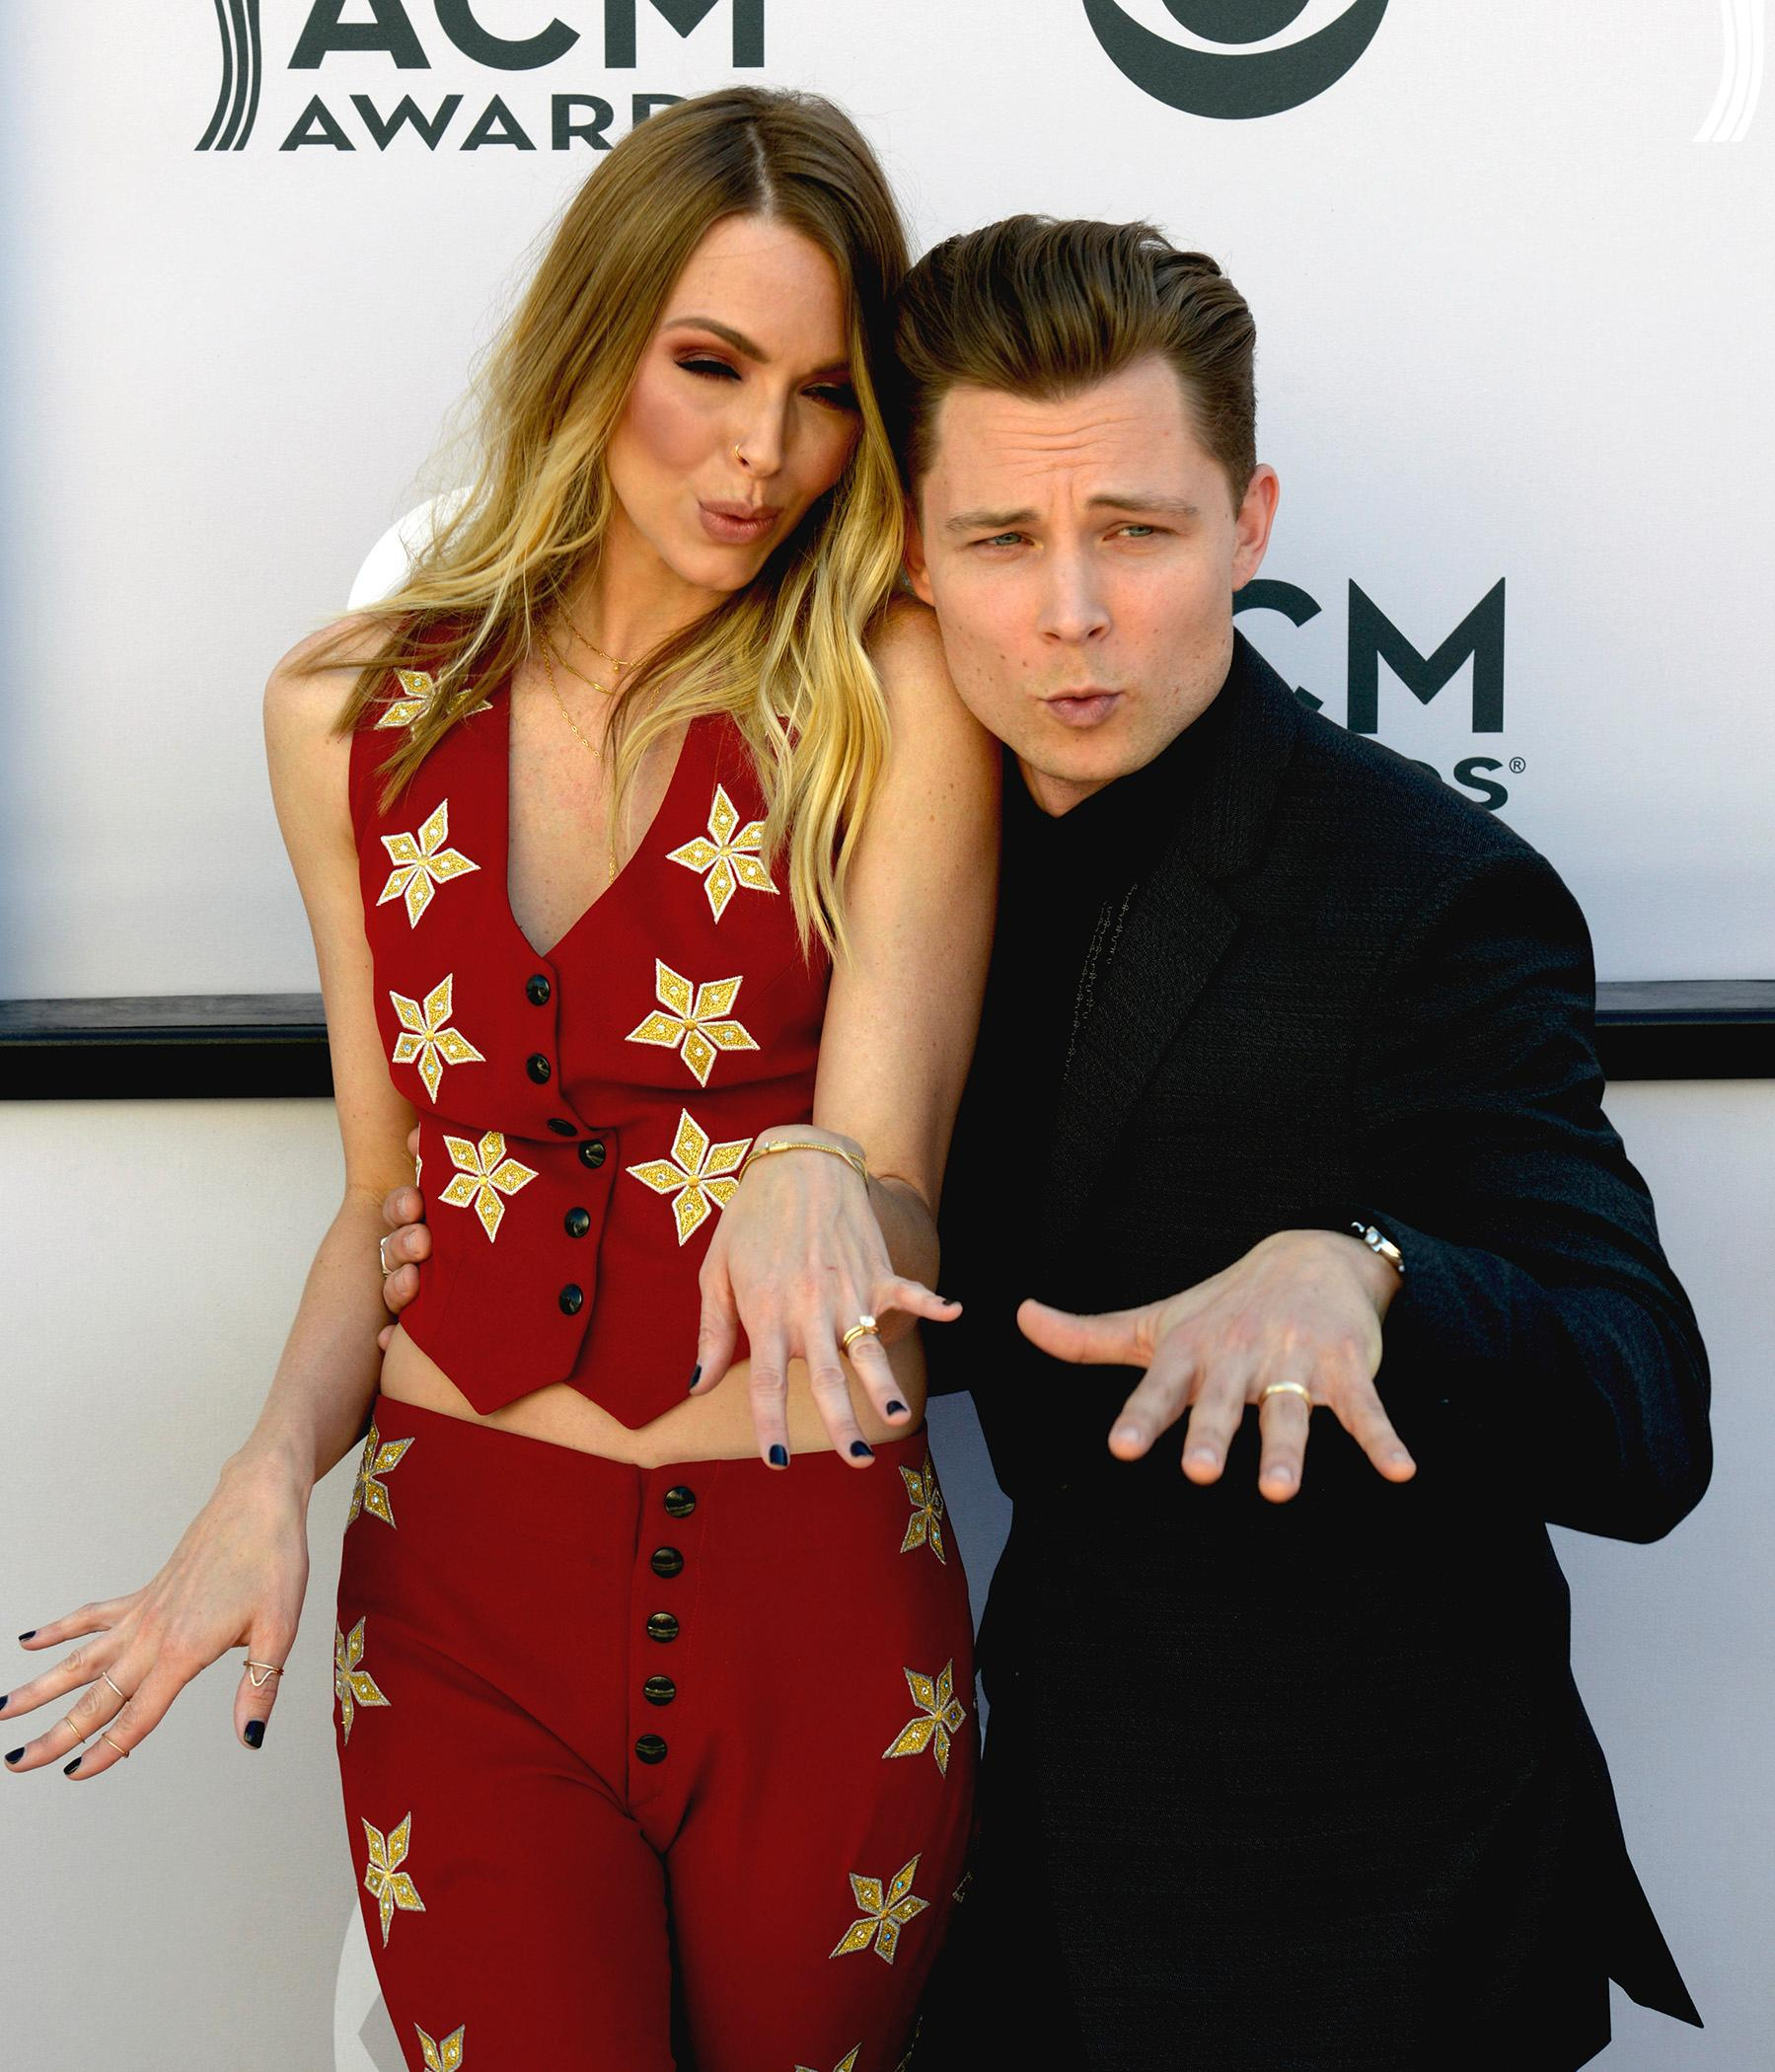 Newly weds singer Frankie Ballard and wife Christina Murphy show their wedding rings off as they walk the Academy of Country Music Awards red carpet at T-Mobile Arena. Sunday, April 2, 2017. (Glenn Pinkerton/ Las Vegas News Bureau)